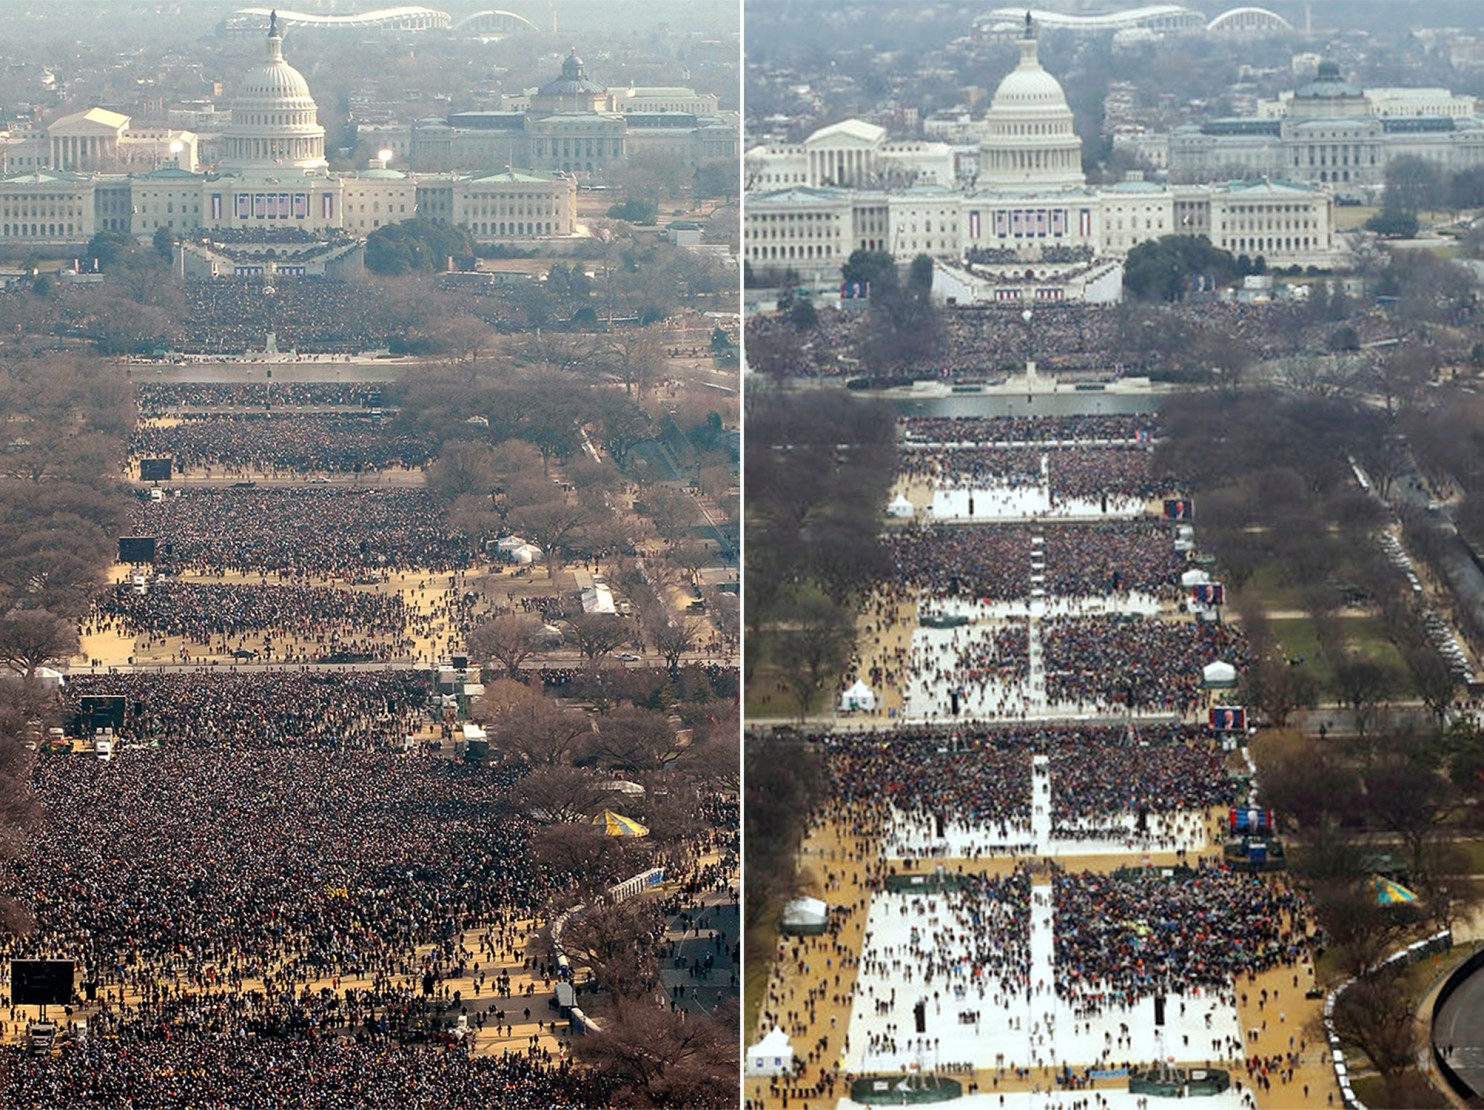 Comparison aerial photos. Donald Trump's 2017 inauguration, right, appeared to draw a smaller crowd than Barack Obama's 2009 inauguration, left. (Reuters via Washington Post)